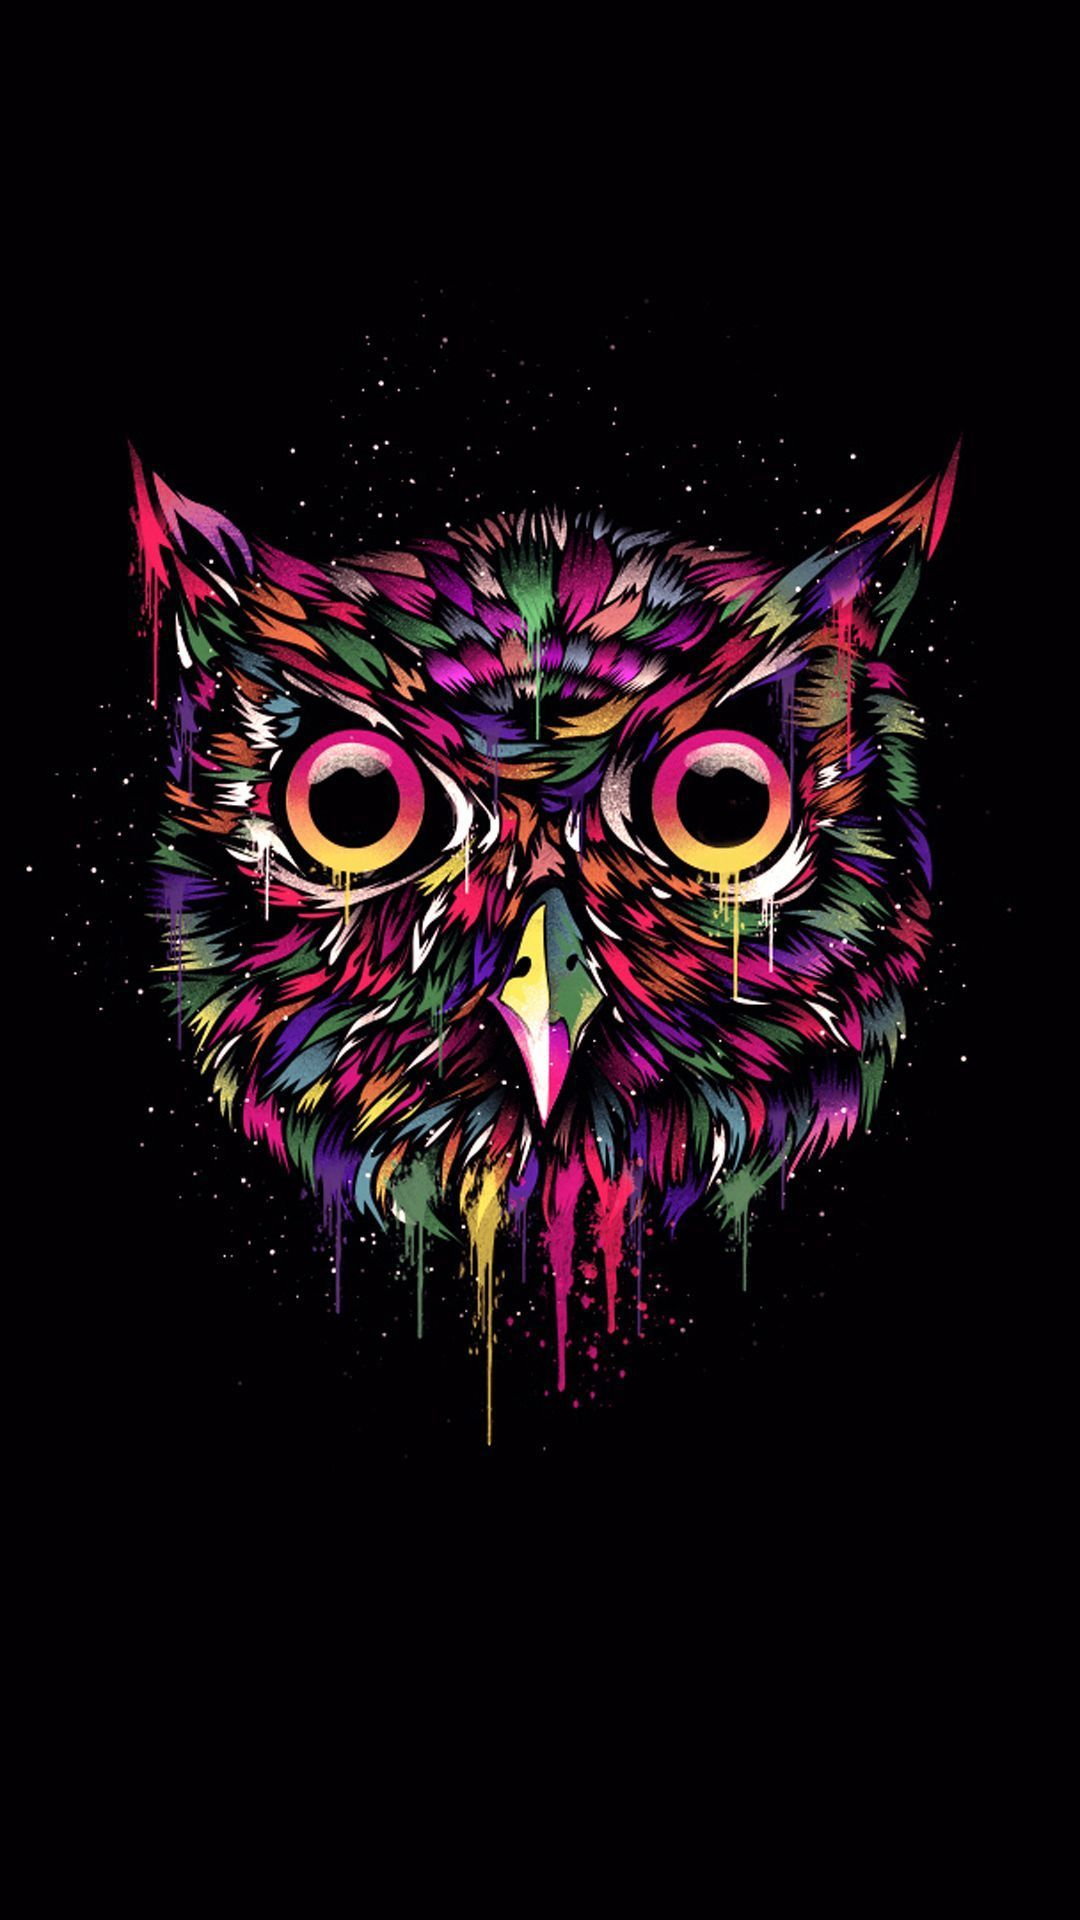 5025 Animals Birds Images Hd Photos 1080p Wallpapers Android Iphone 2020 In 2020 Owl Wallpaper Cute Owls Wallpaper Owl Wallpaper Iphone